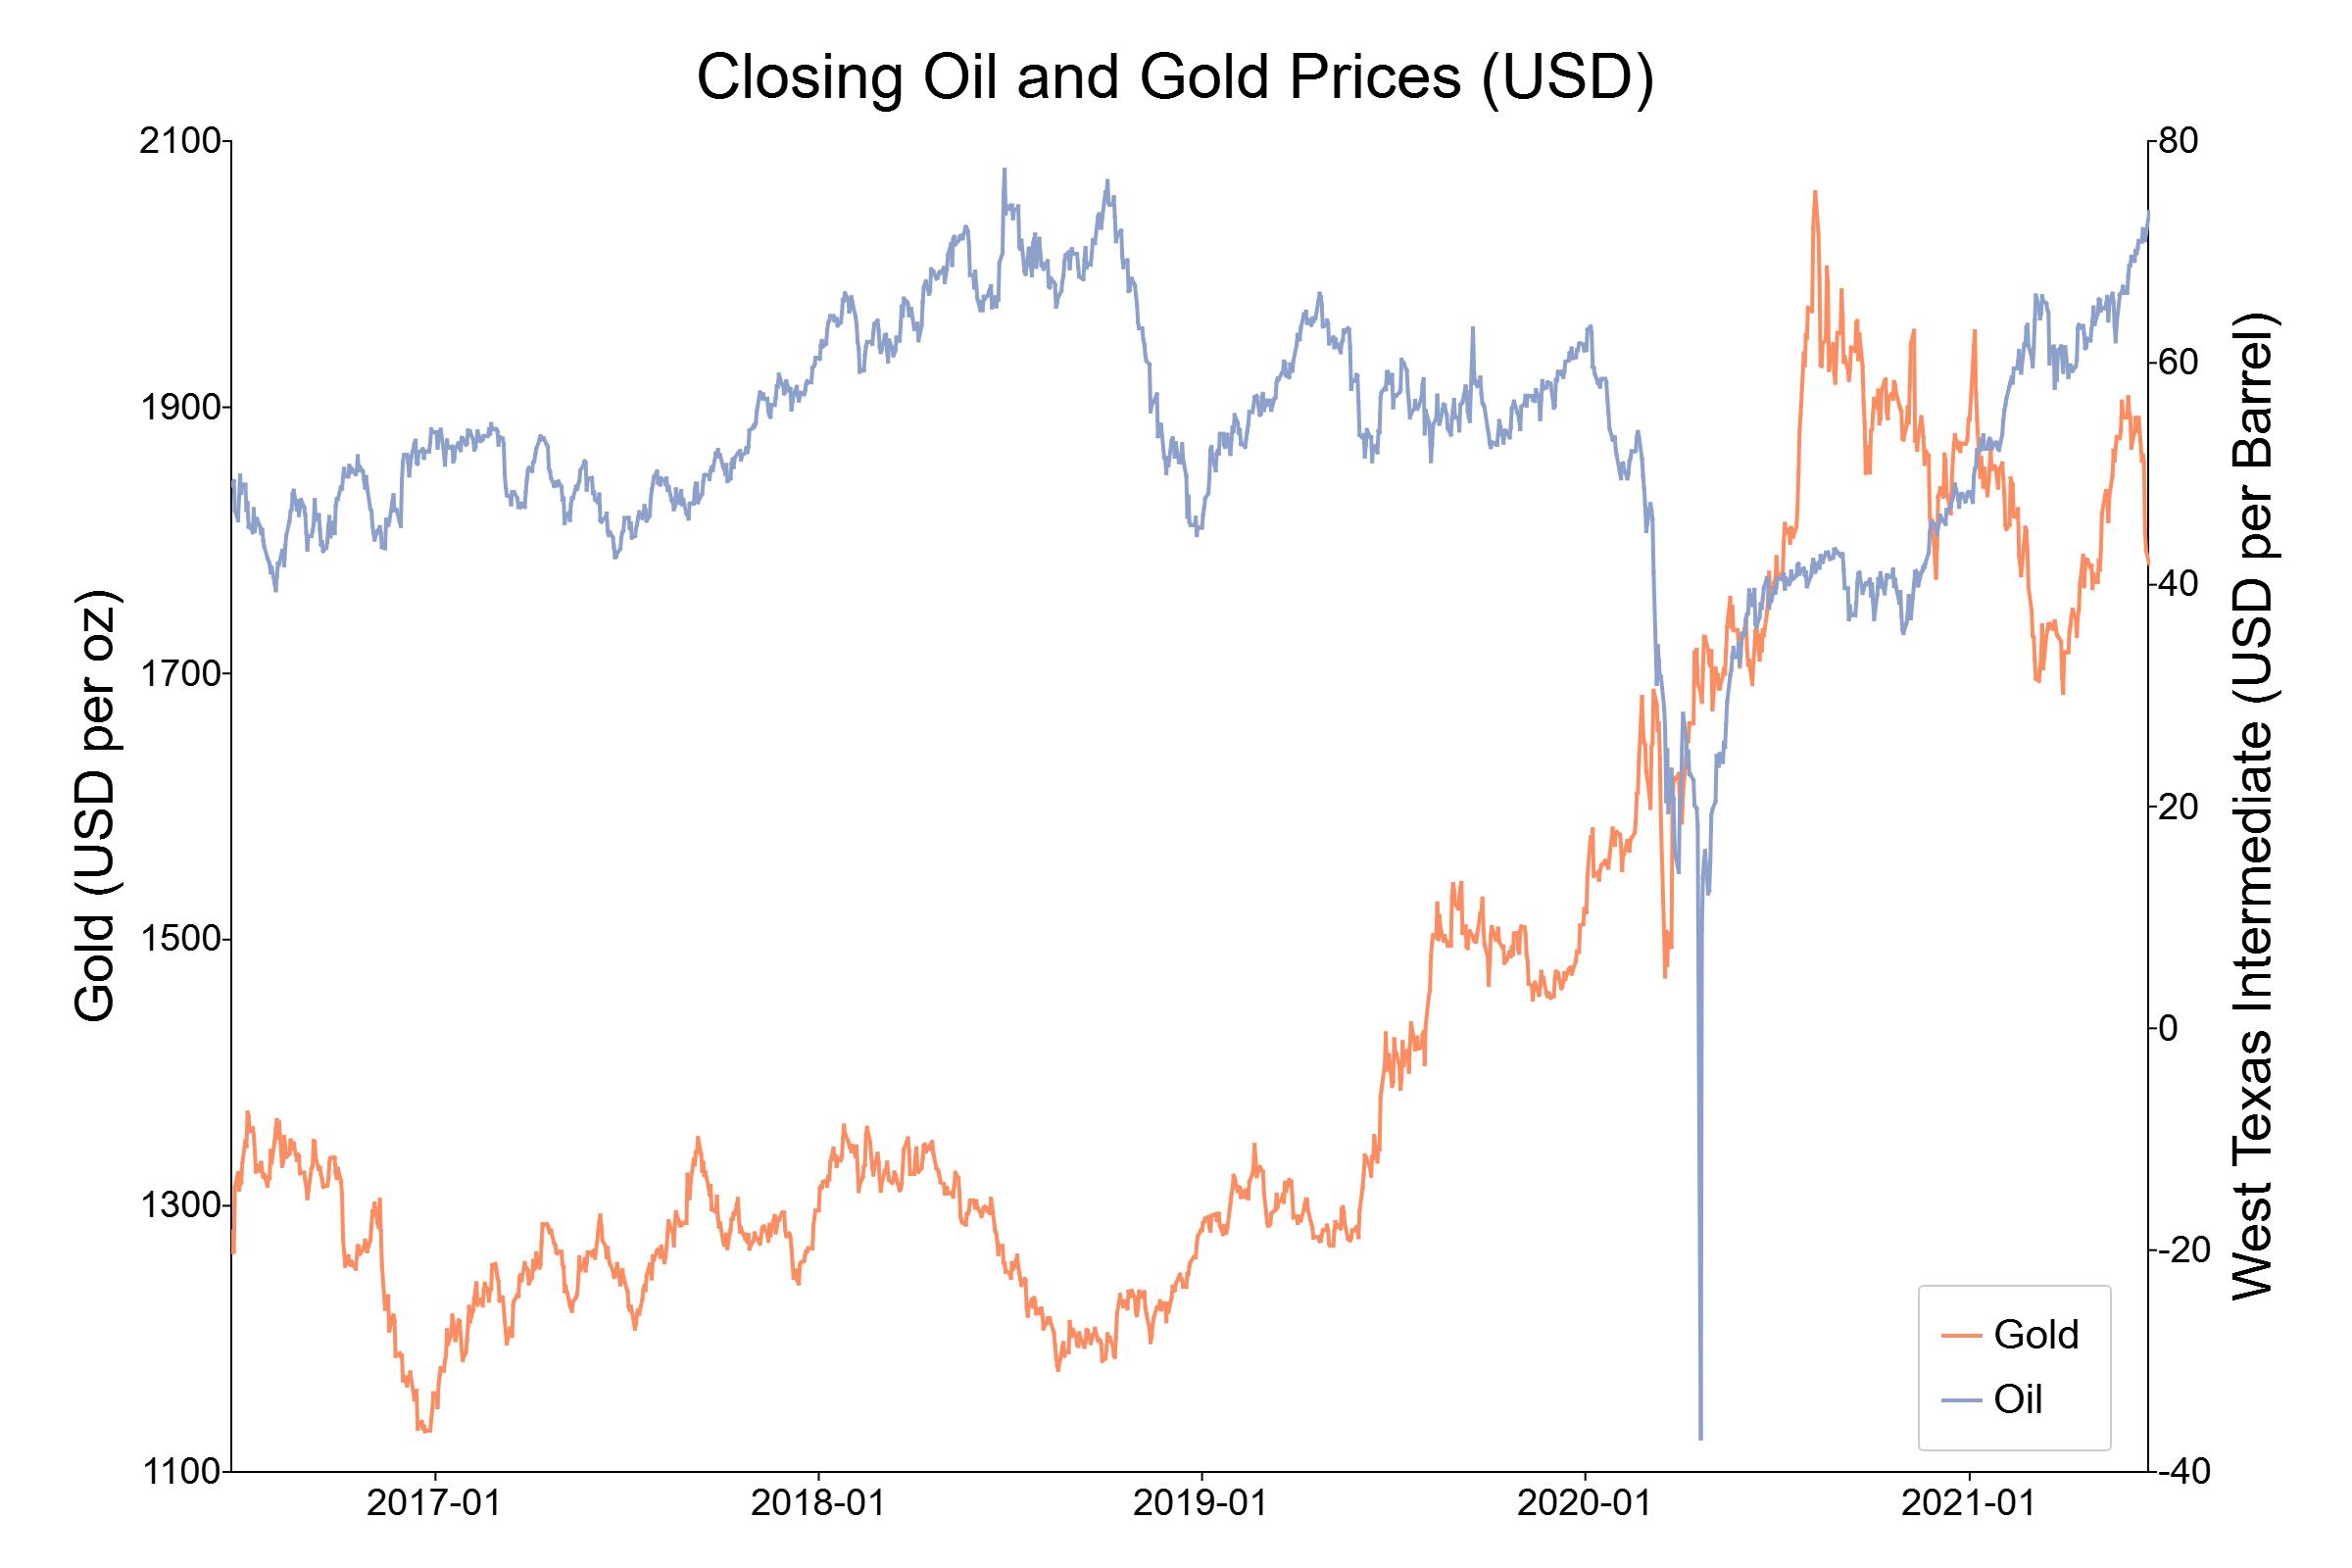 Time series plot of oil and gold prices